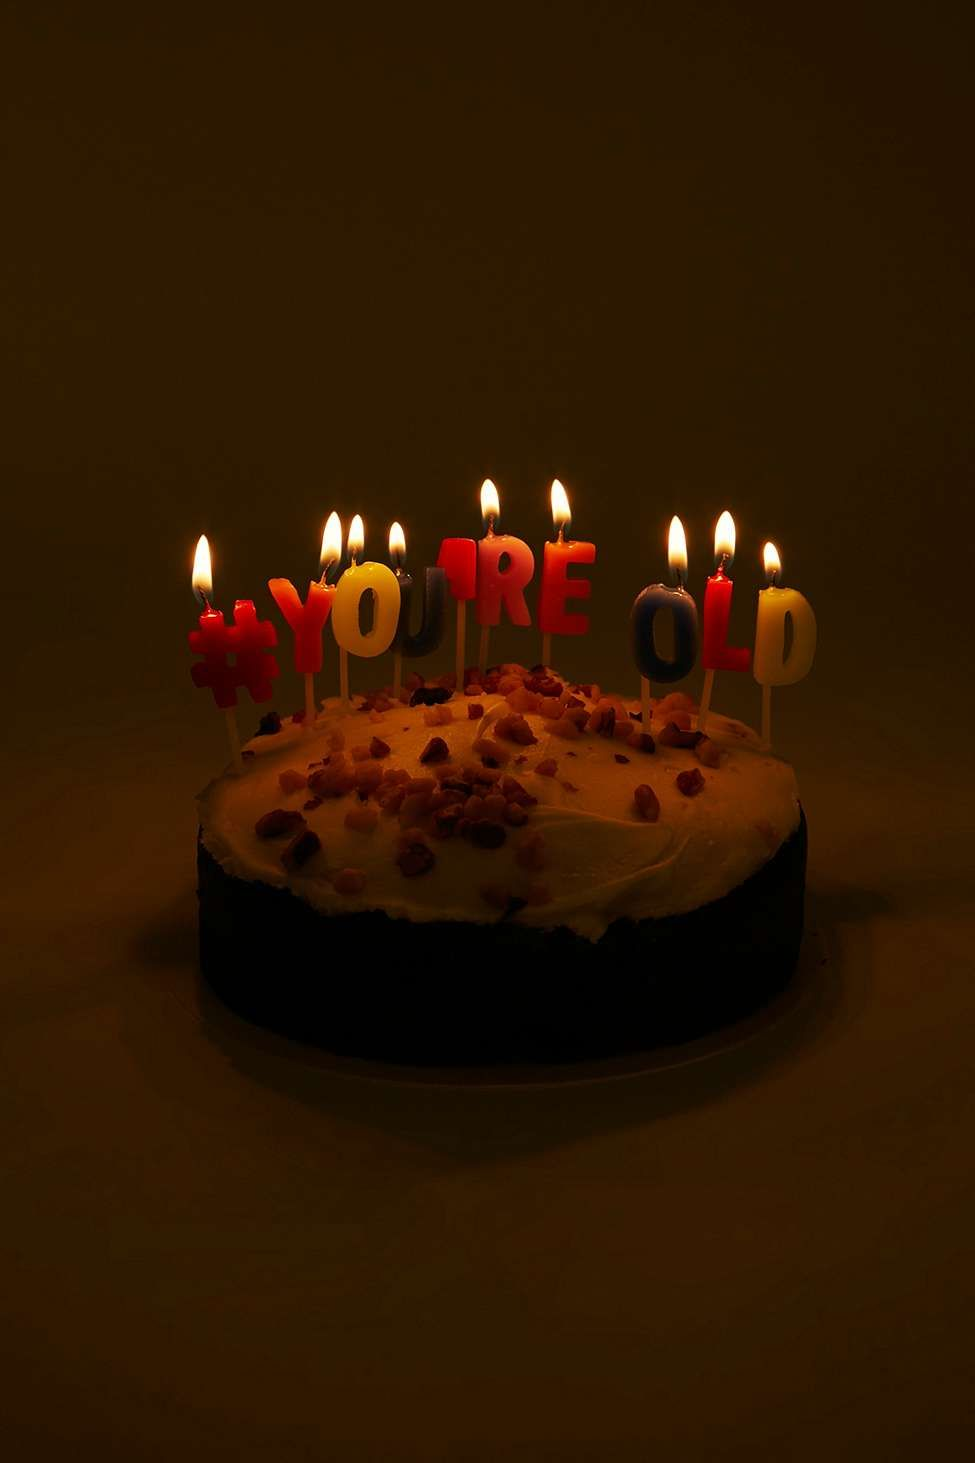 Youre Old Birthday Cake Candles Cake Party Pinterest